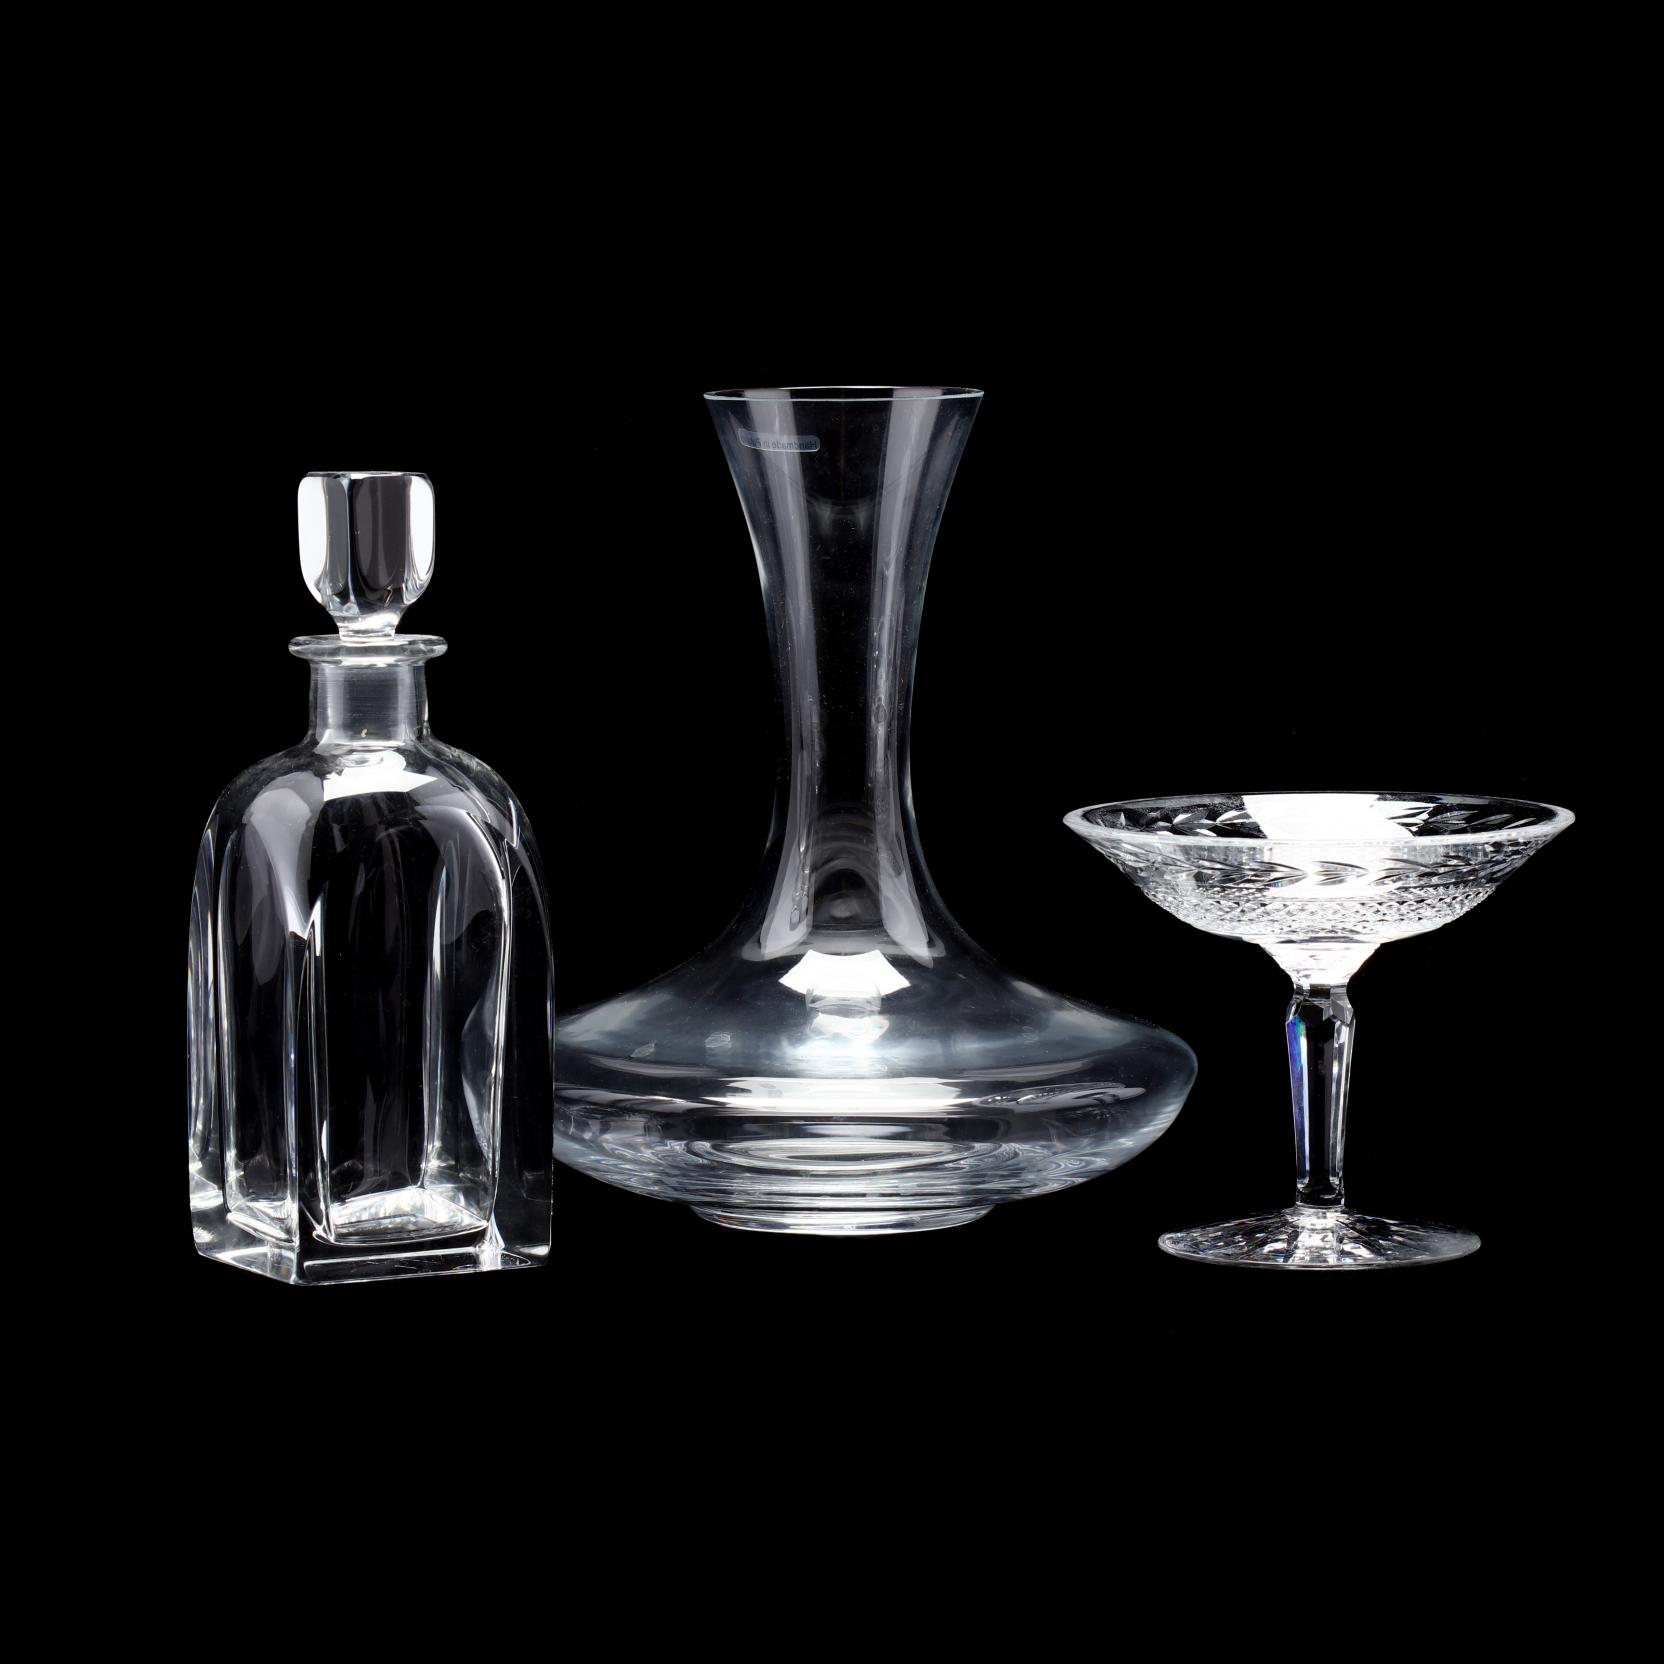 three-glass-serving-pieces